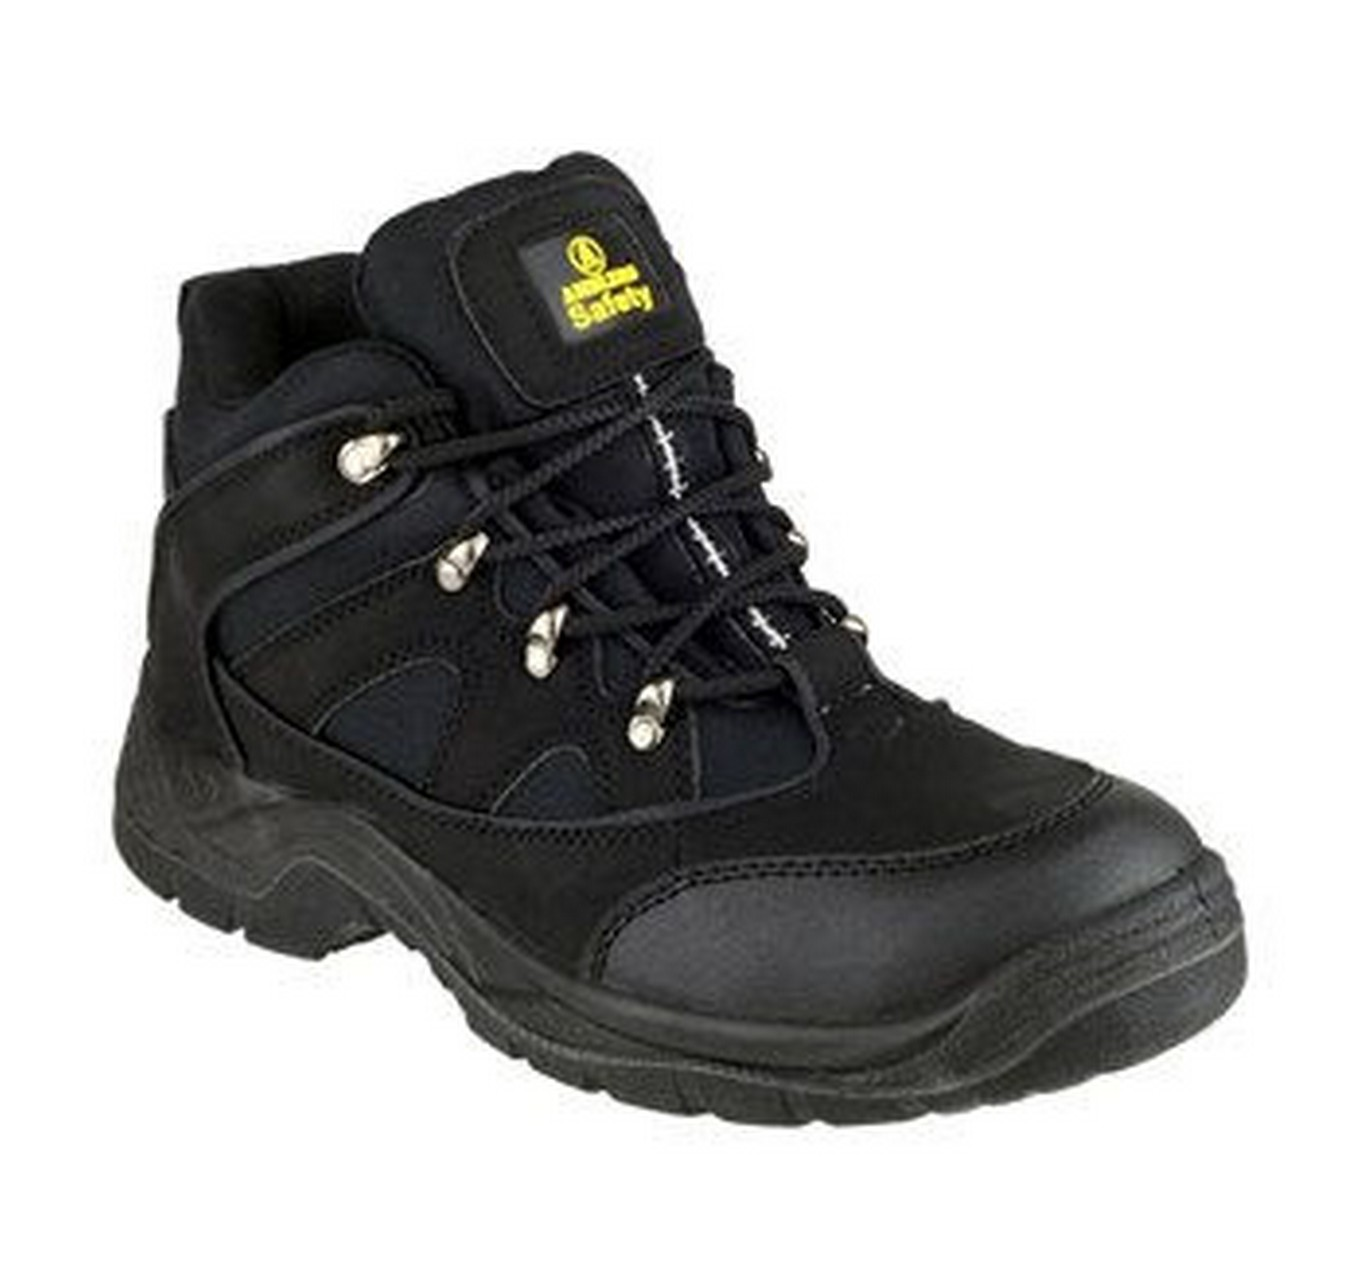 Safety Boot Amblers Fs151 11